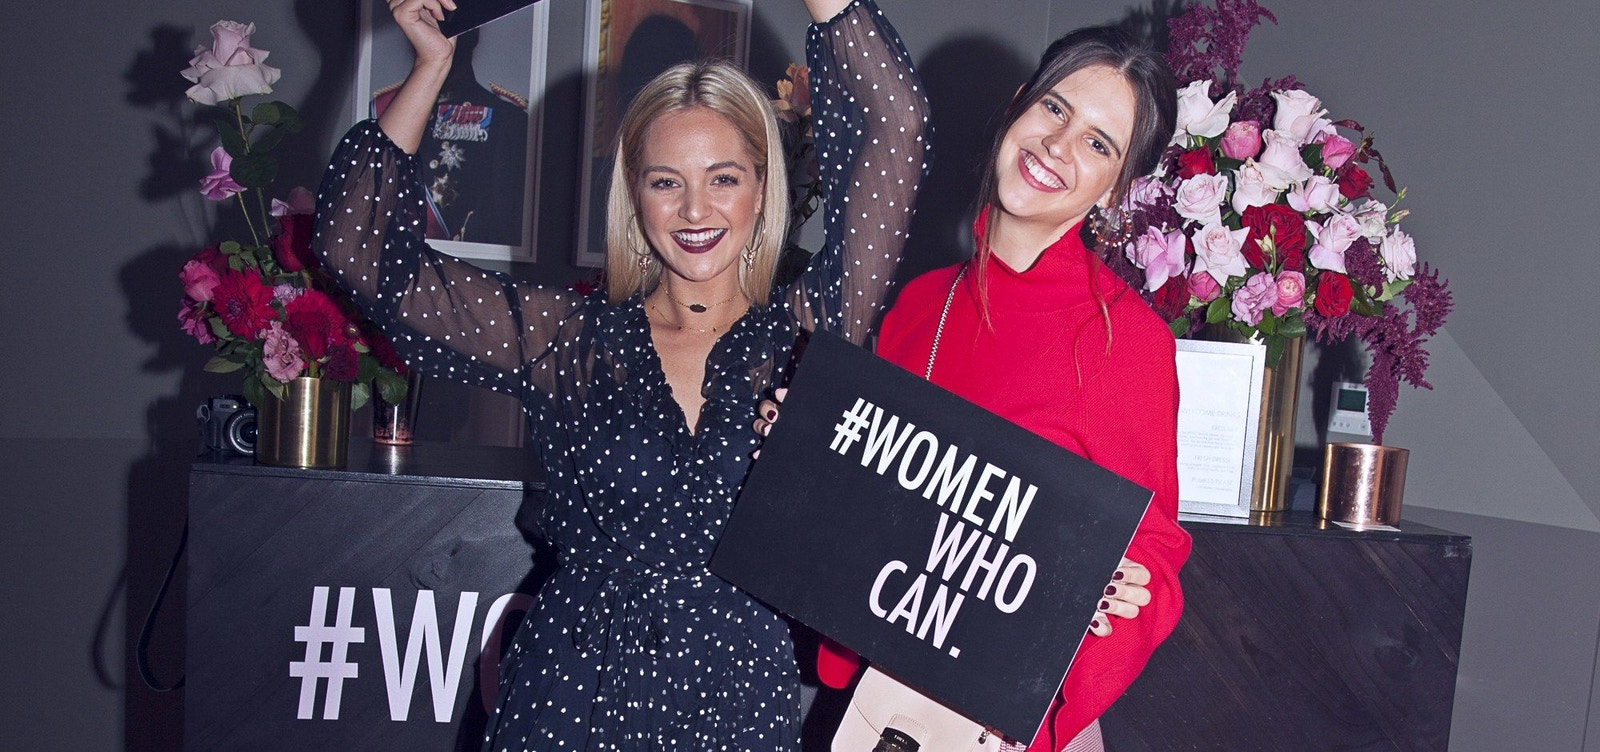 'WOMEN WHO CAN' CAMPAIGN BY KAREN MILLEN